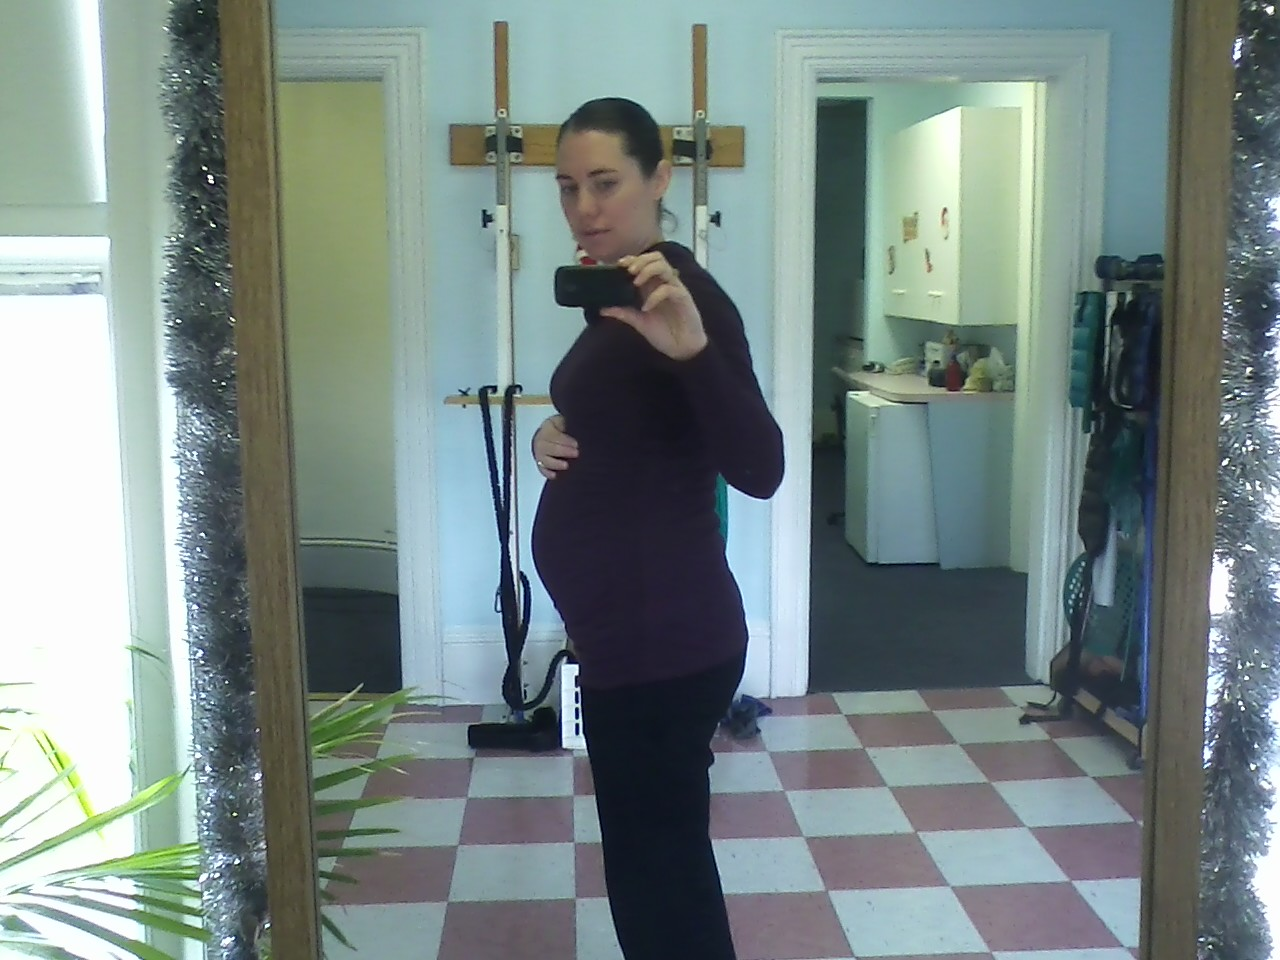 27 Weeks Pregnant How Many Months Left Images - Frompo